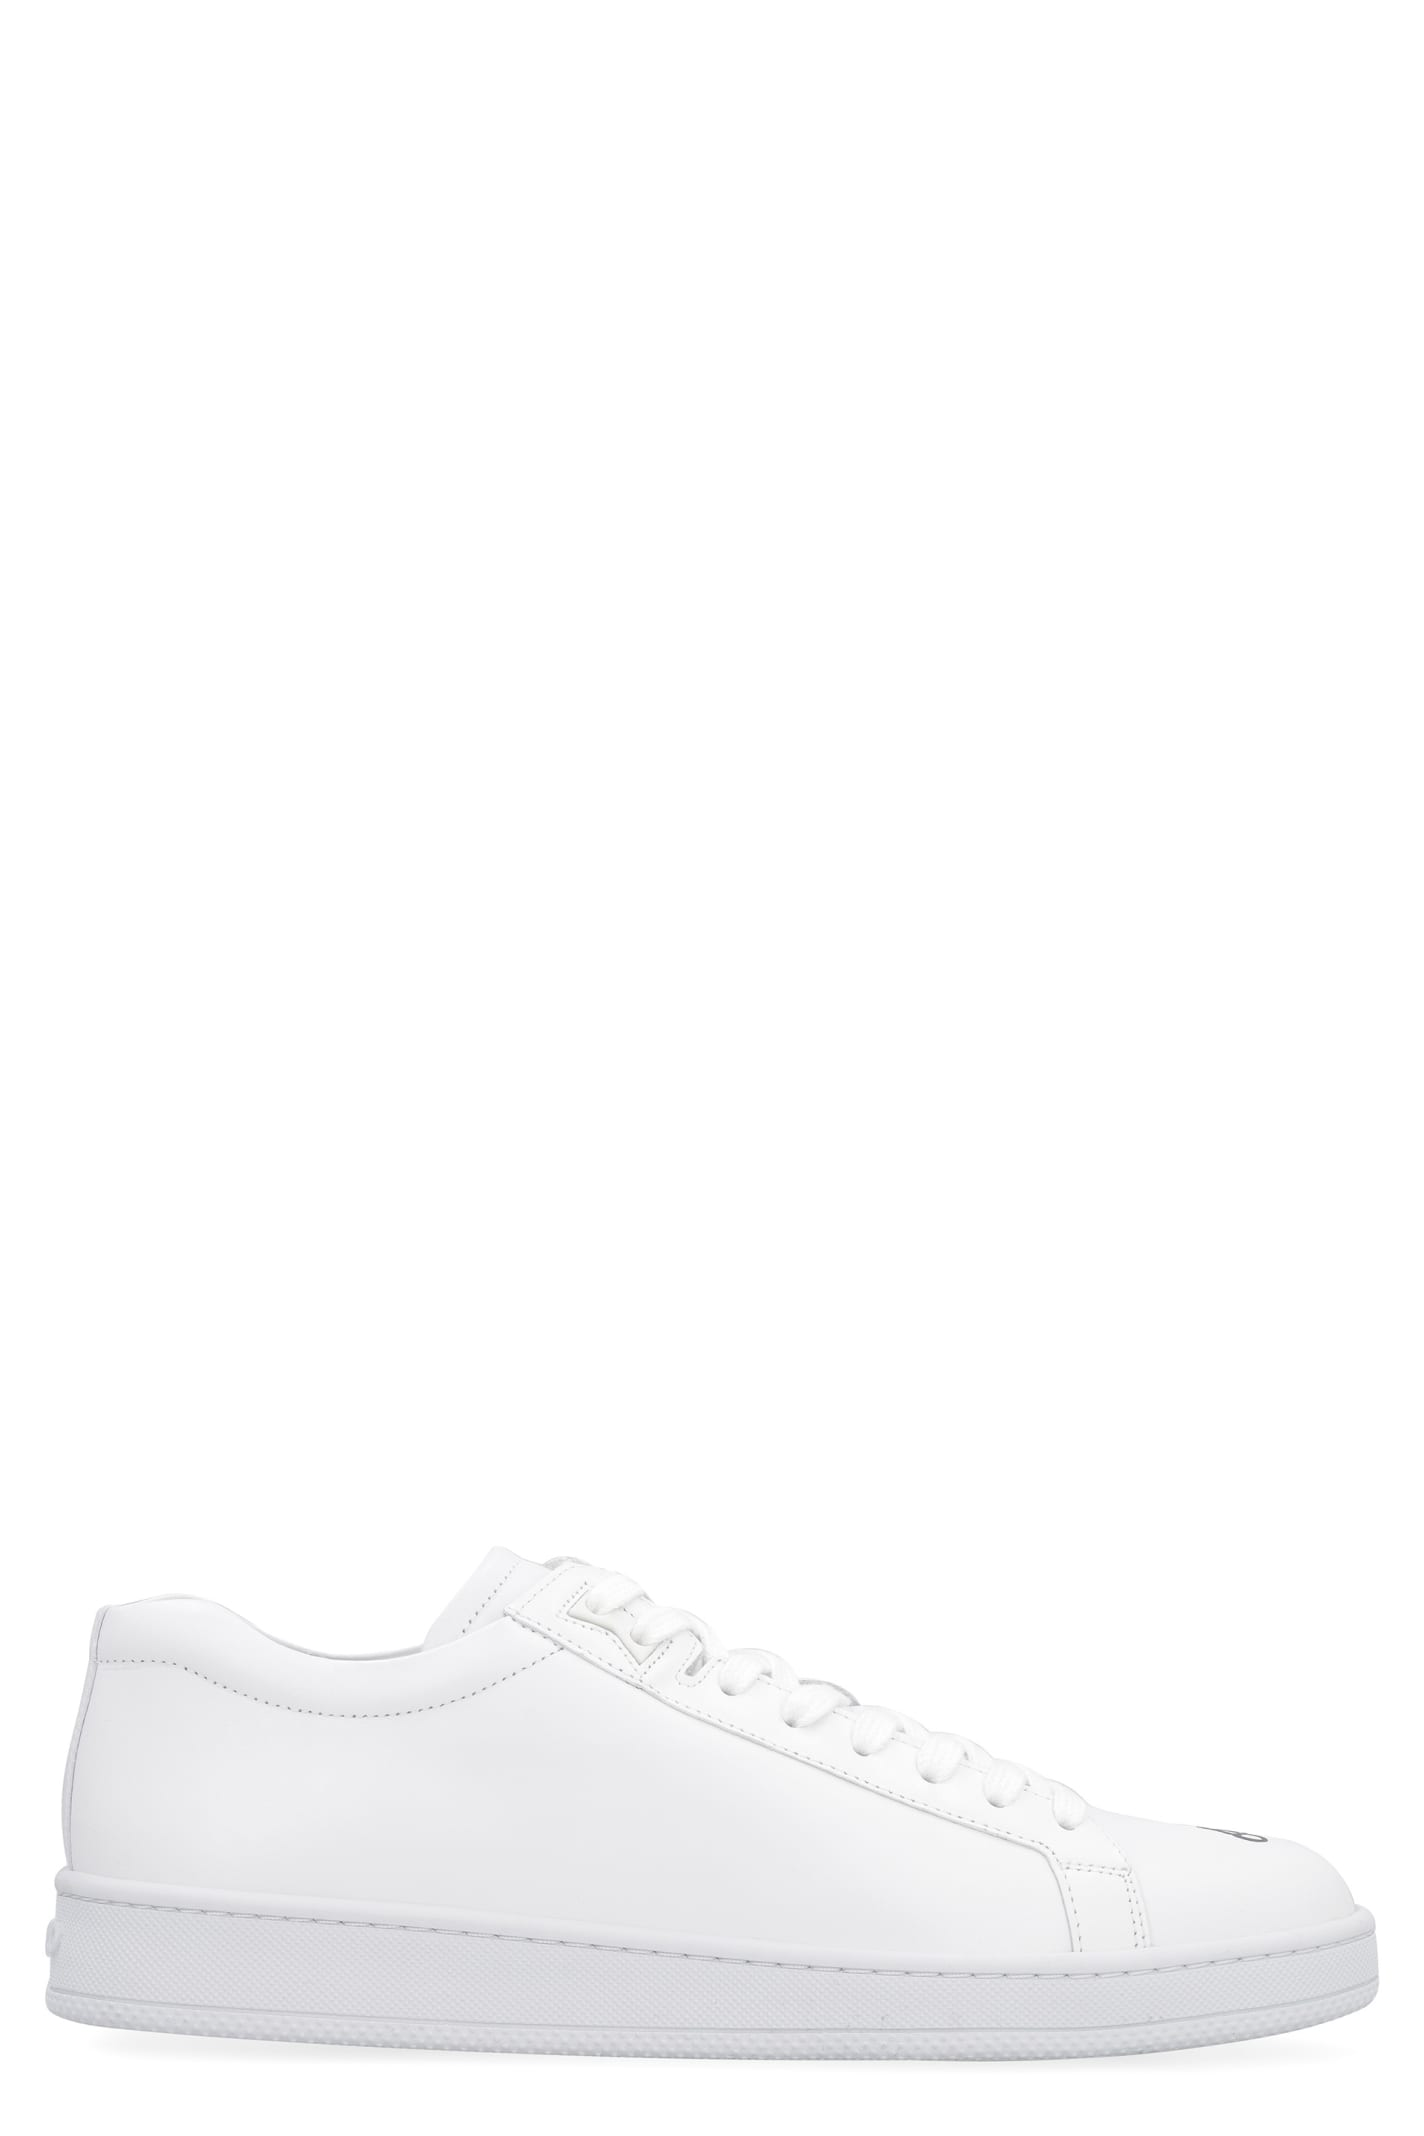 Kenzo Leather Low-top Sneakers